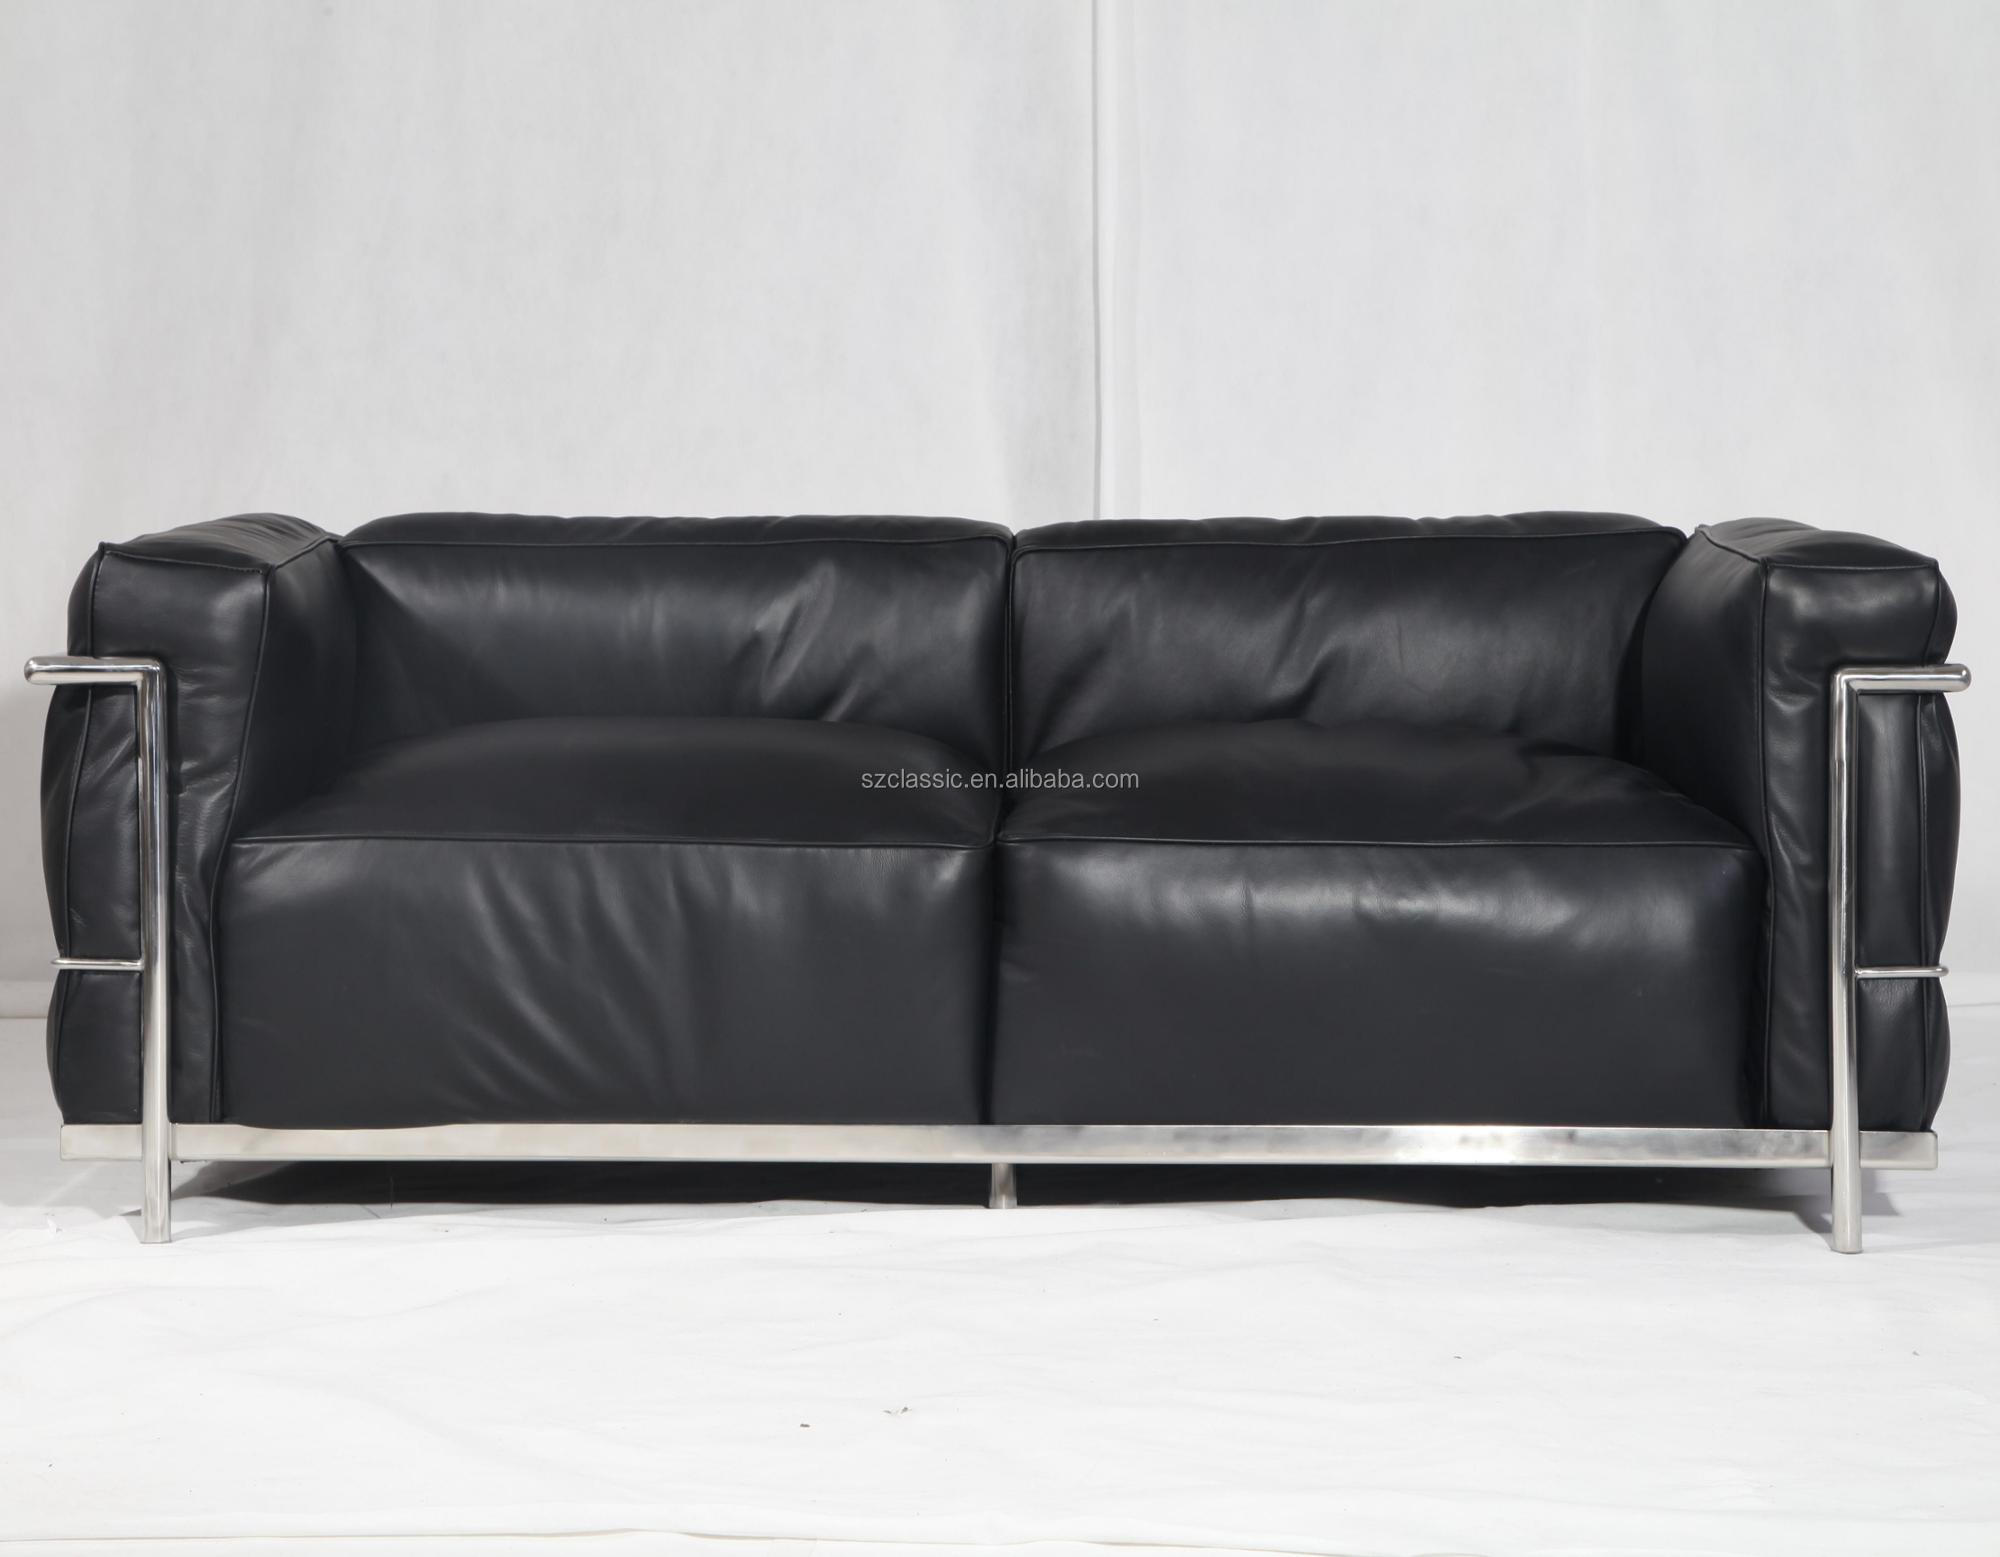 Bauhaus Style Furniture Full Grain Cow Leather Le Corbusier Lc3 Sofa